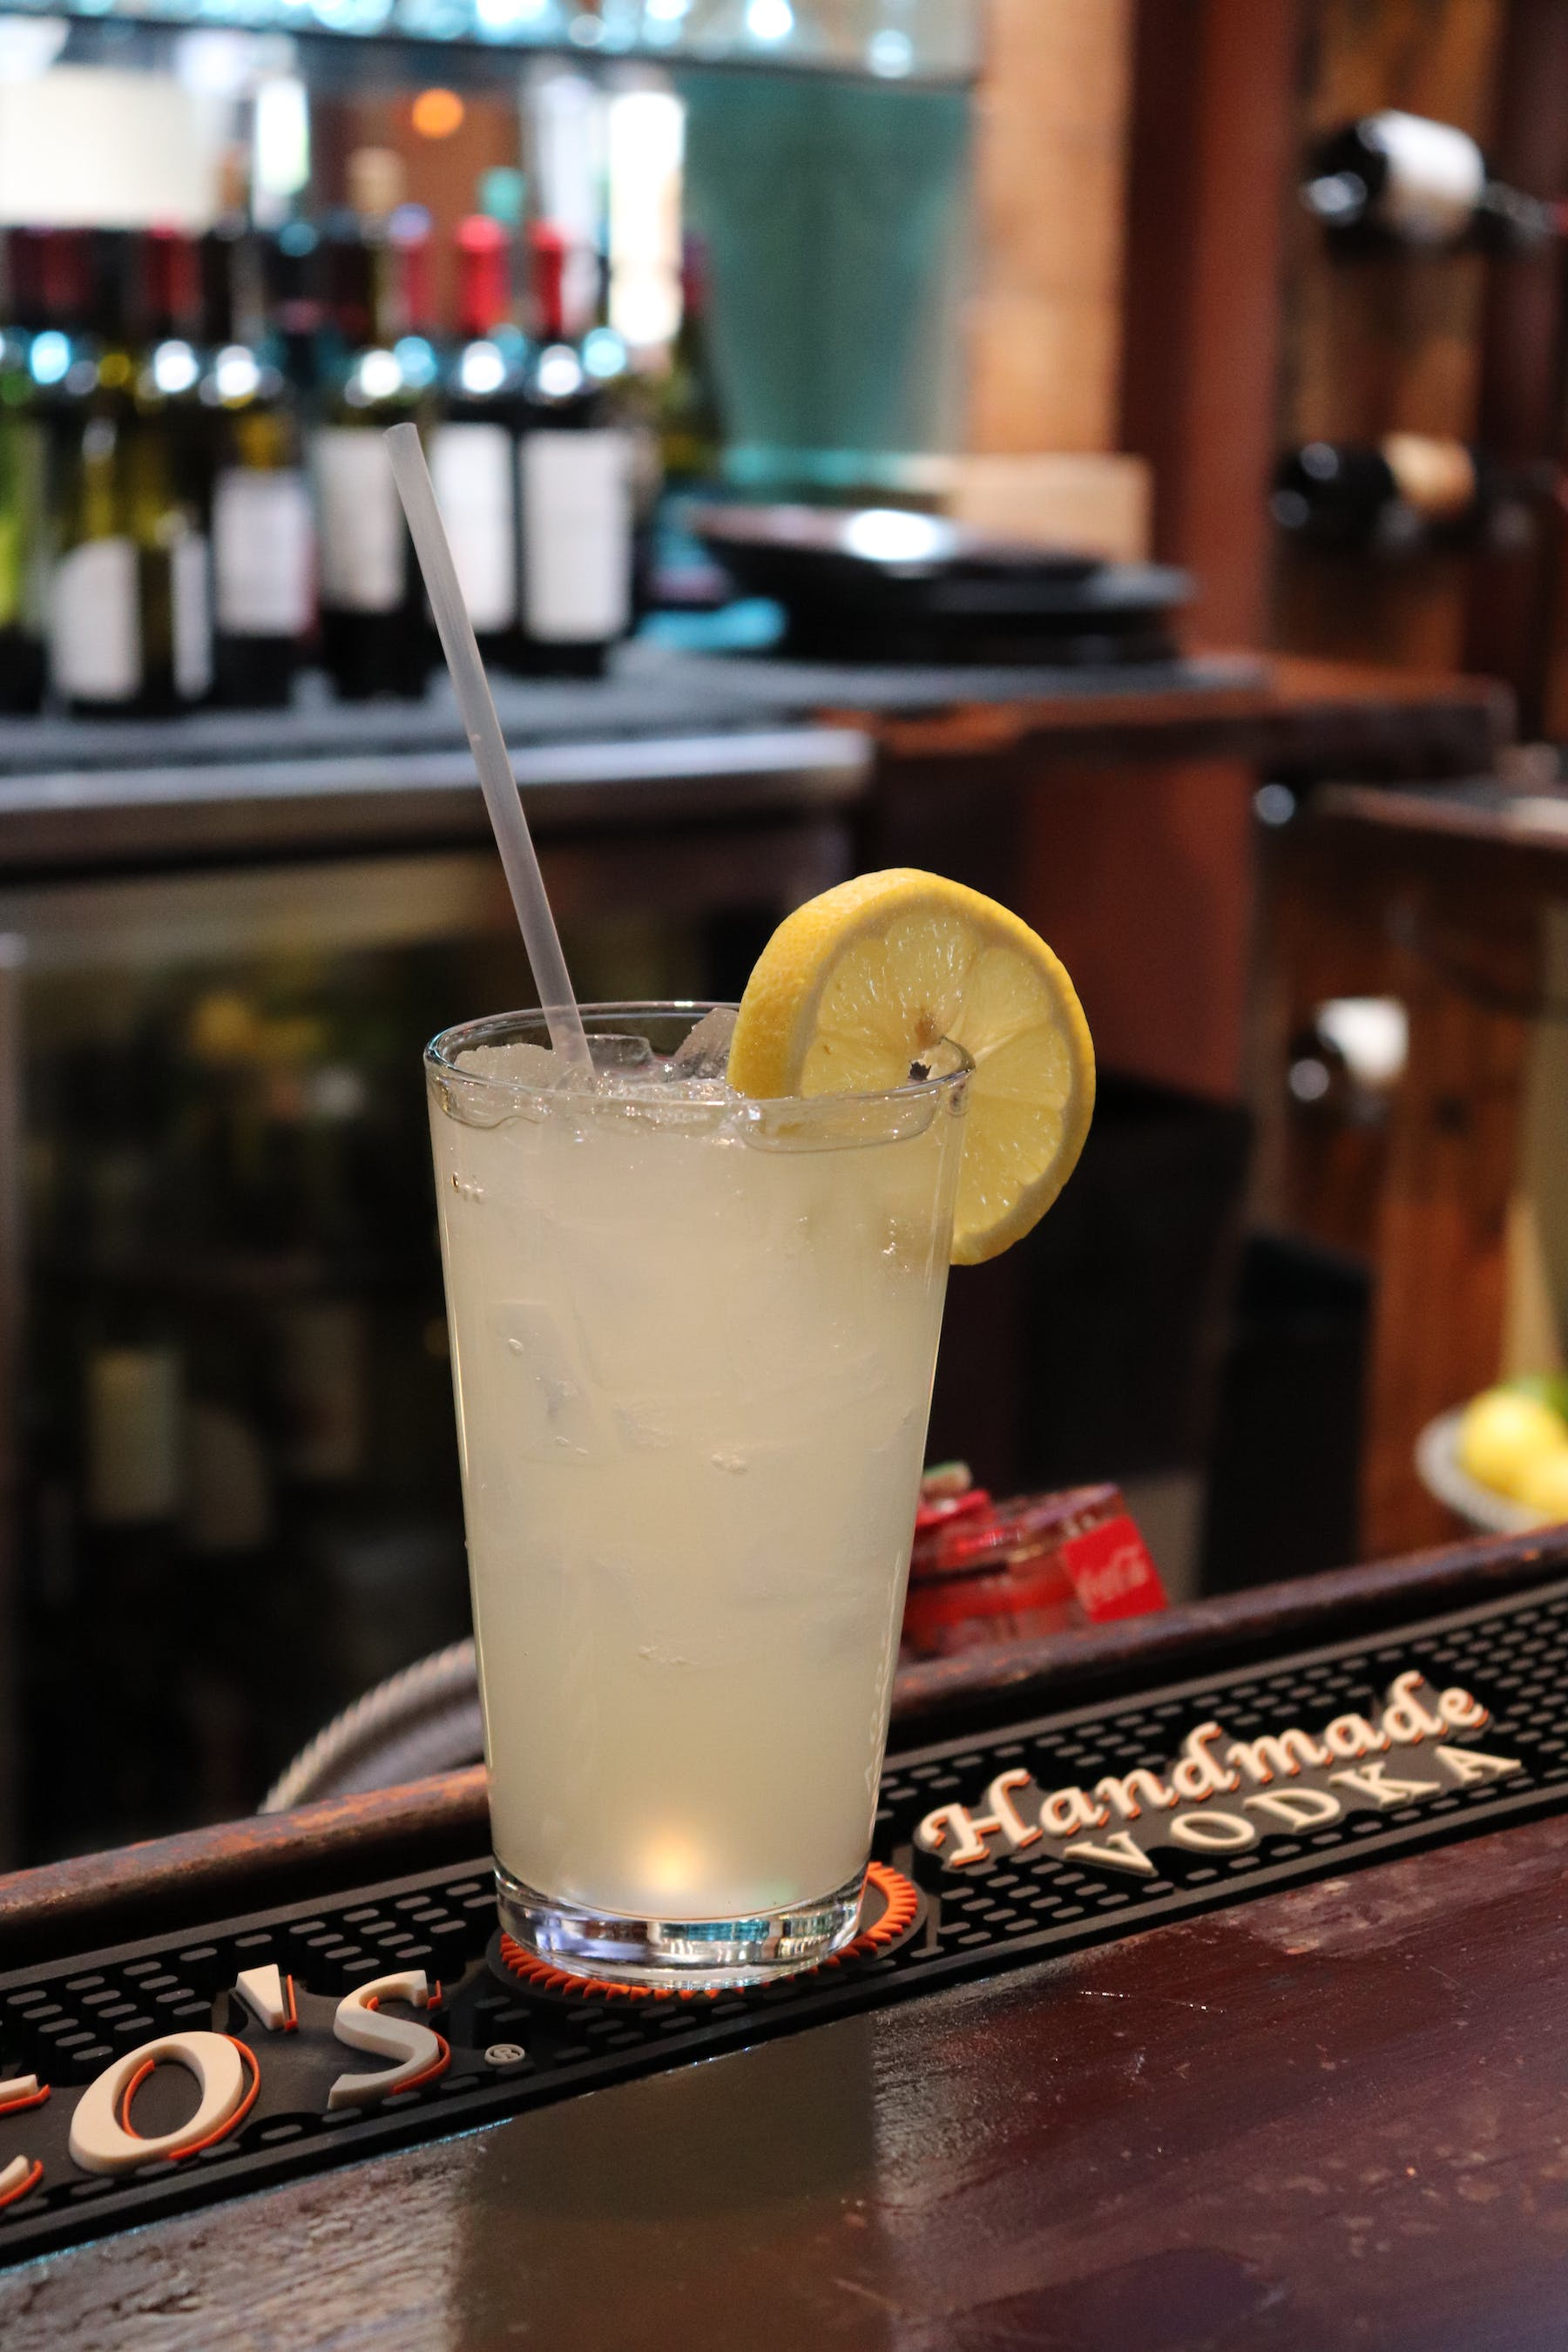 a close up of a drink with a lemon slice as decoration